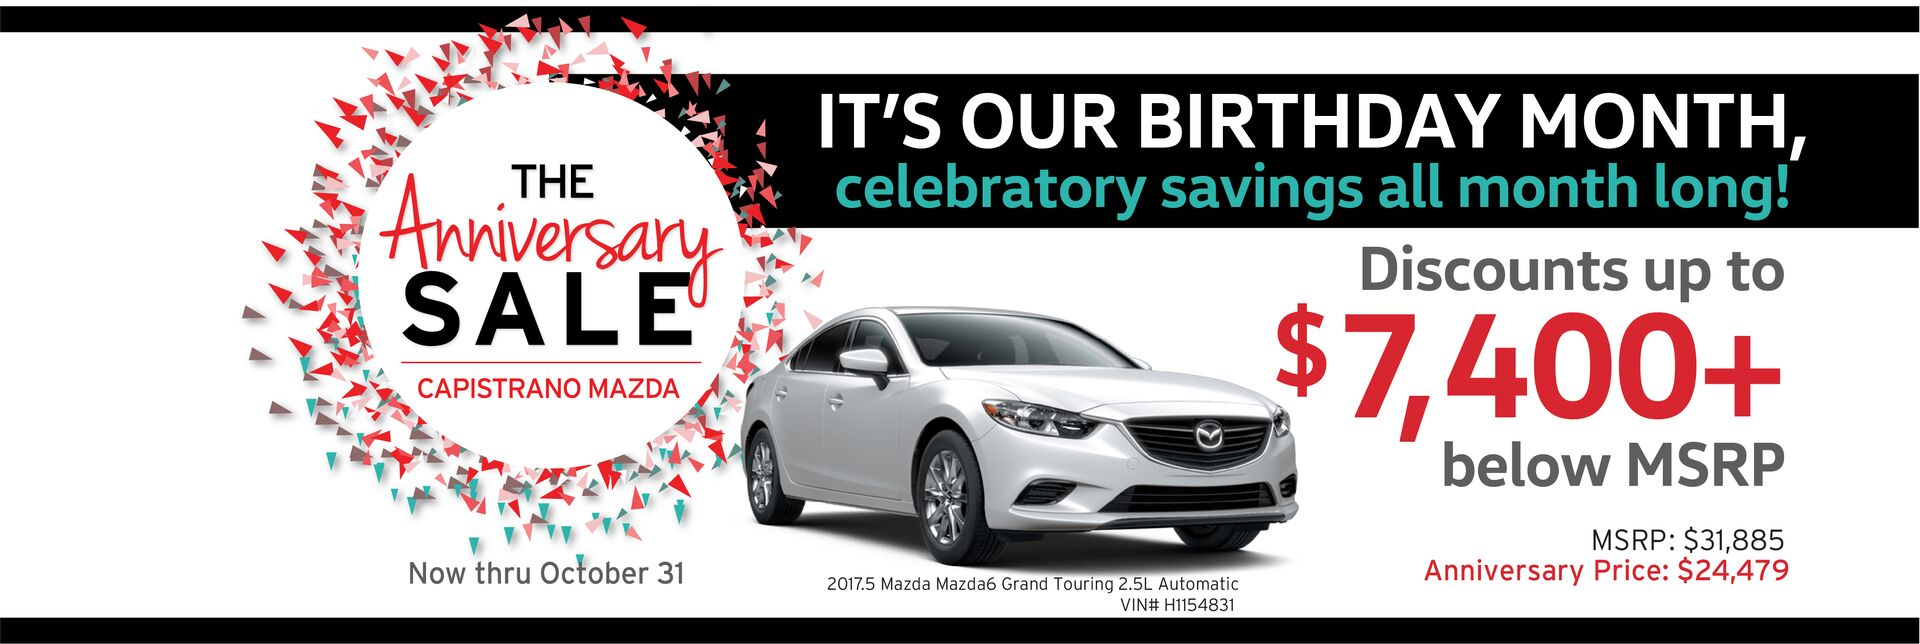 Capistrano Mazda Anniversary Sale with discounts - Save up to $7,400+ below MSRP